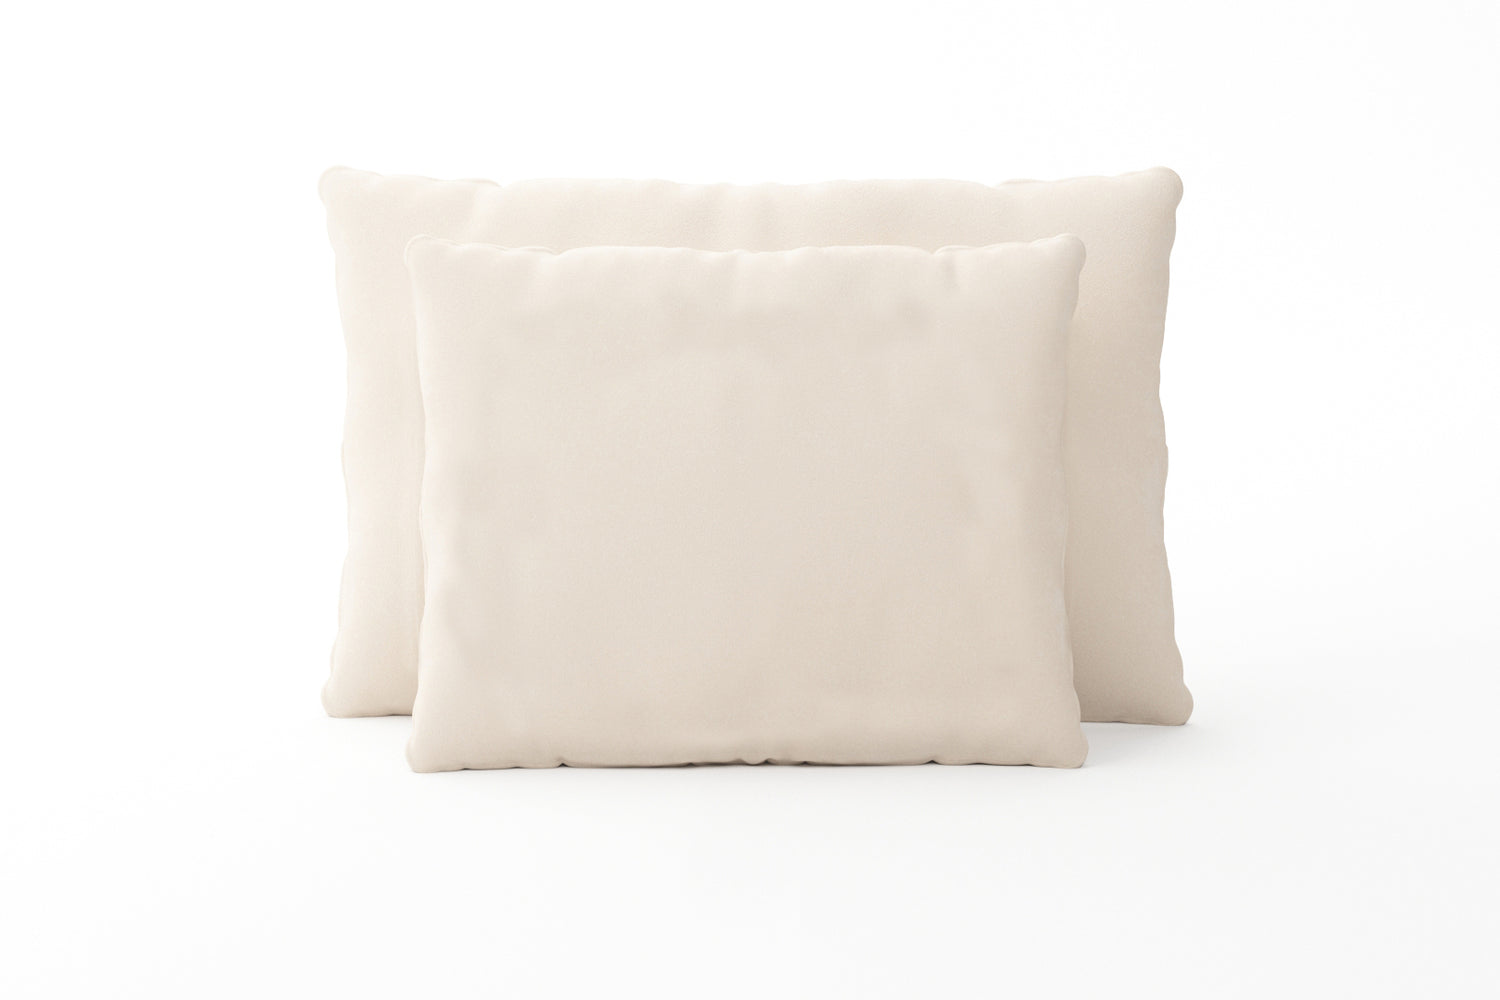 Molded Organic and Natural Latex Pillow